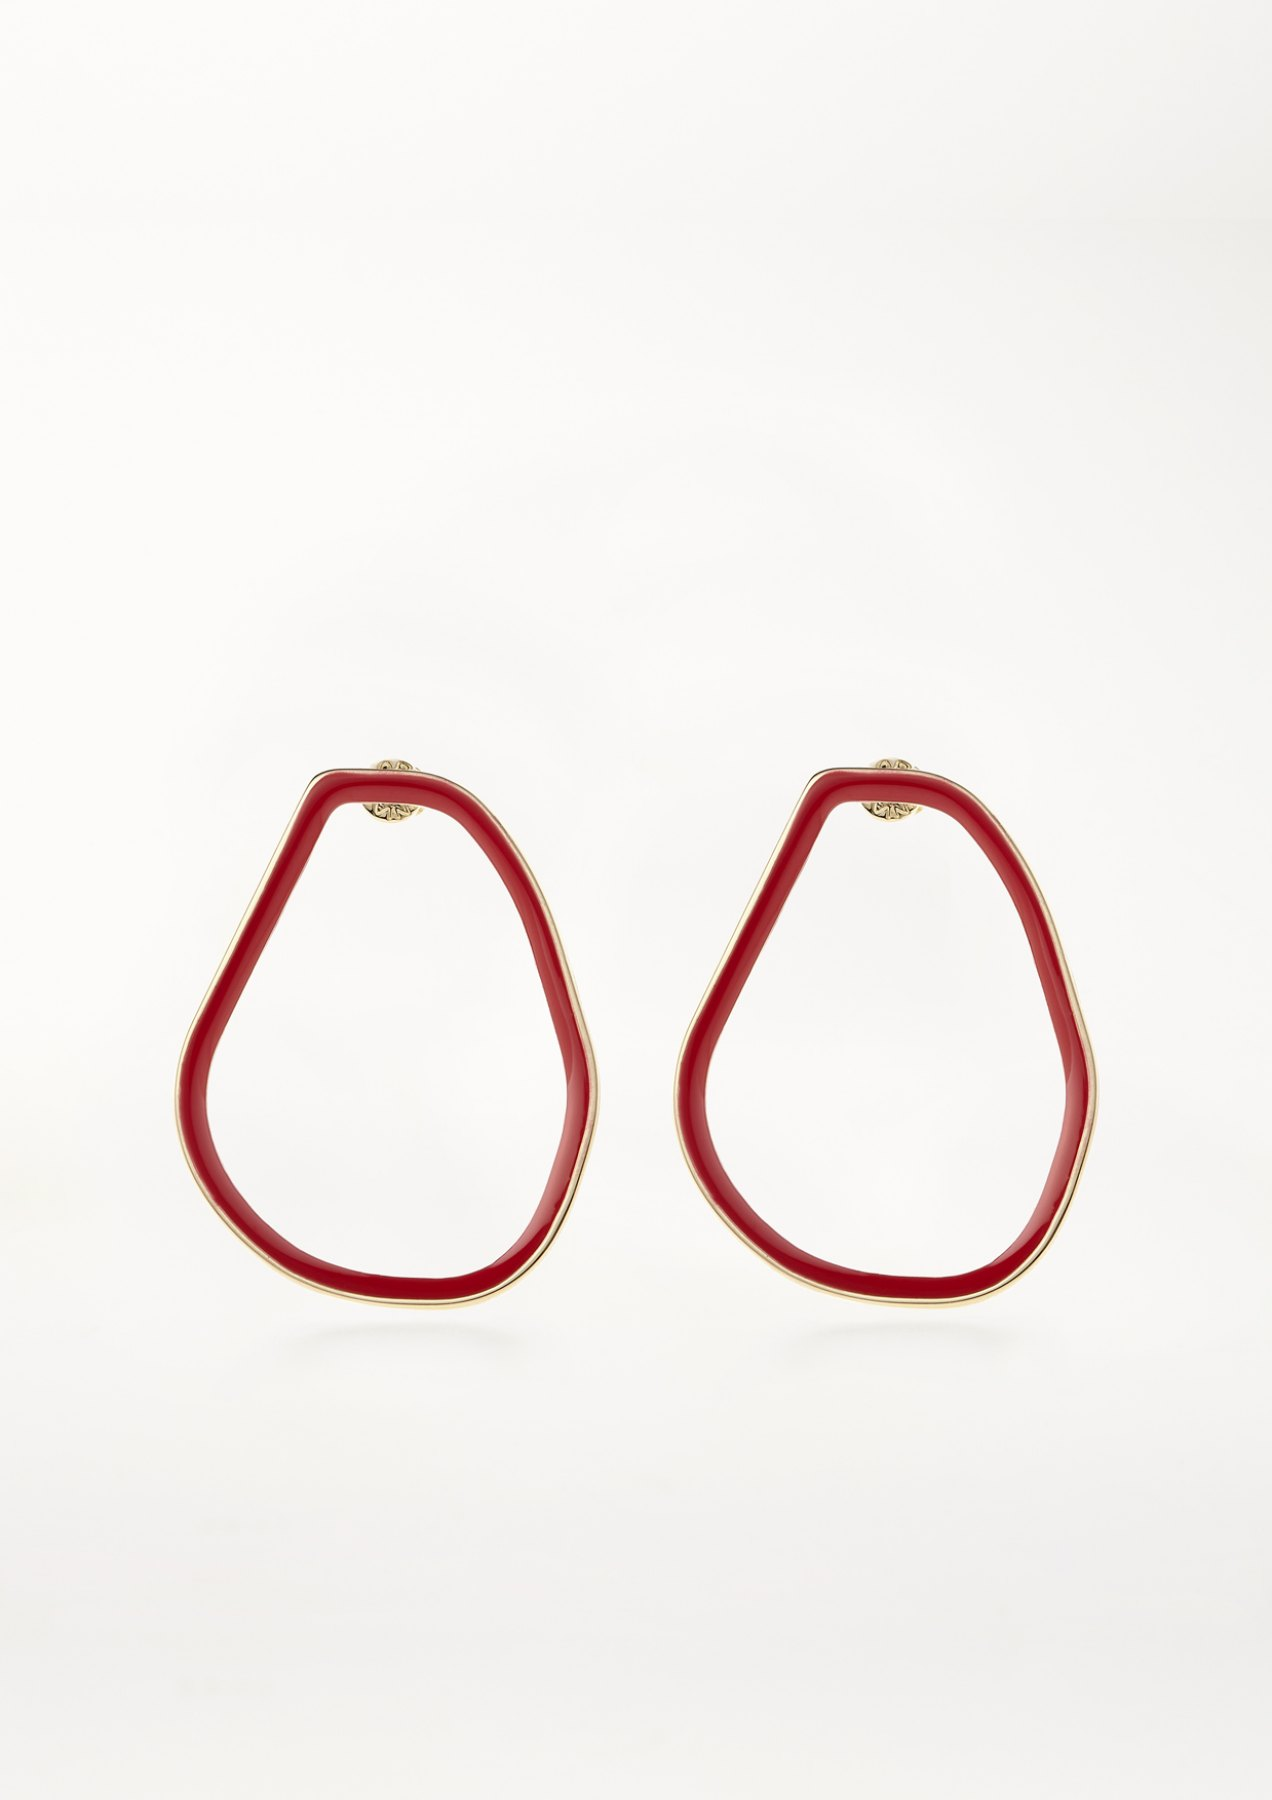 xenia bous jewellery coloured stone 02 earrings feuerrot rot